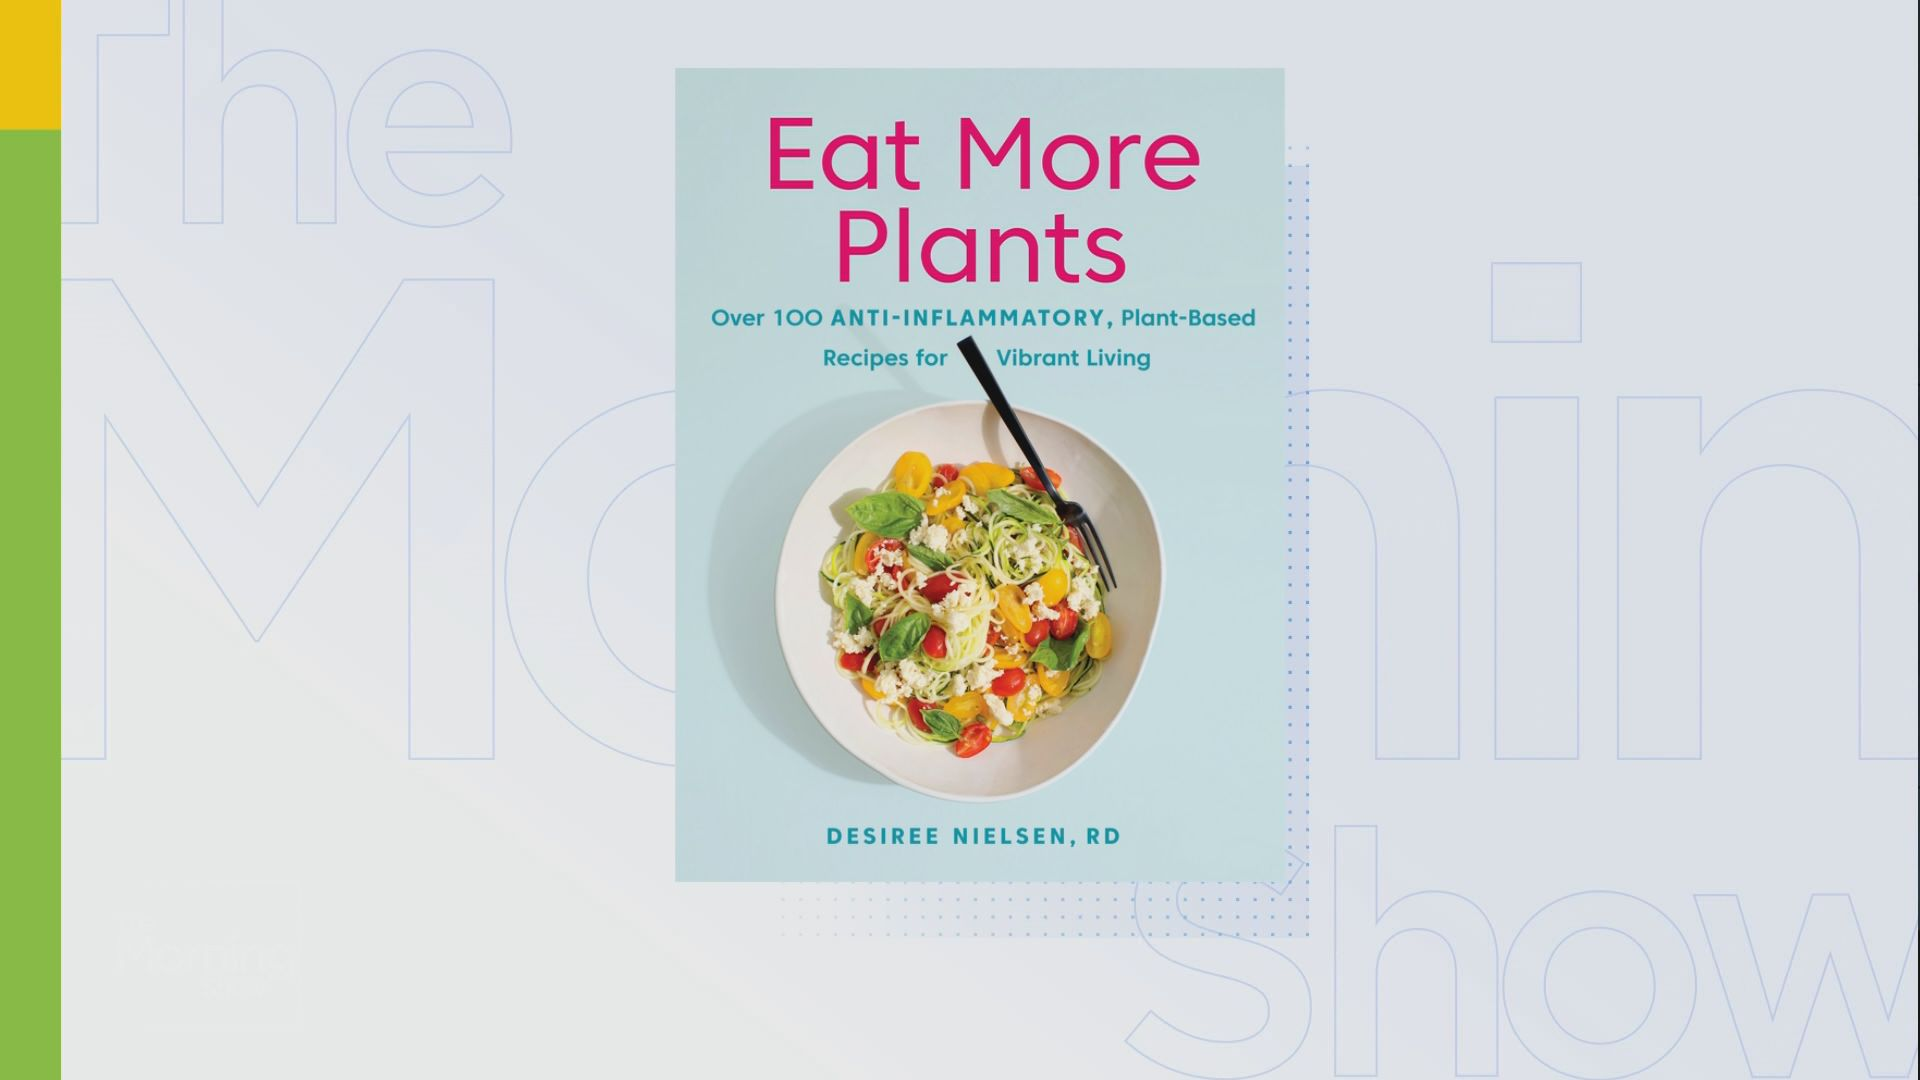 Revolutionize your approach to healthy eating